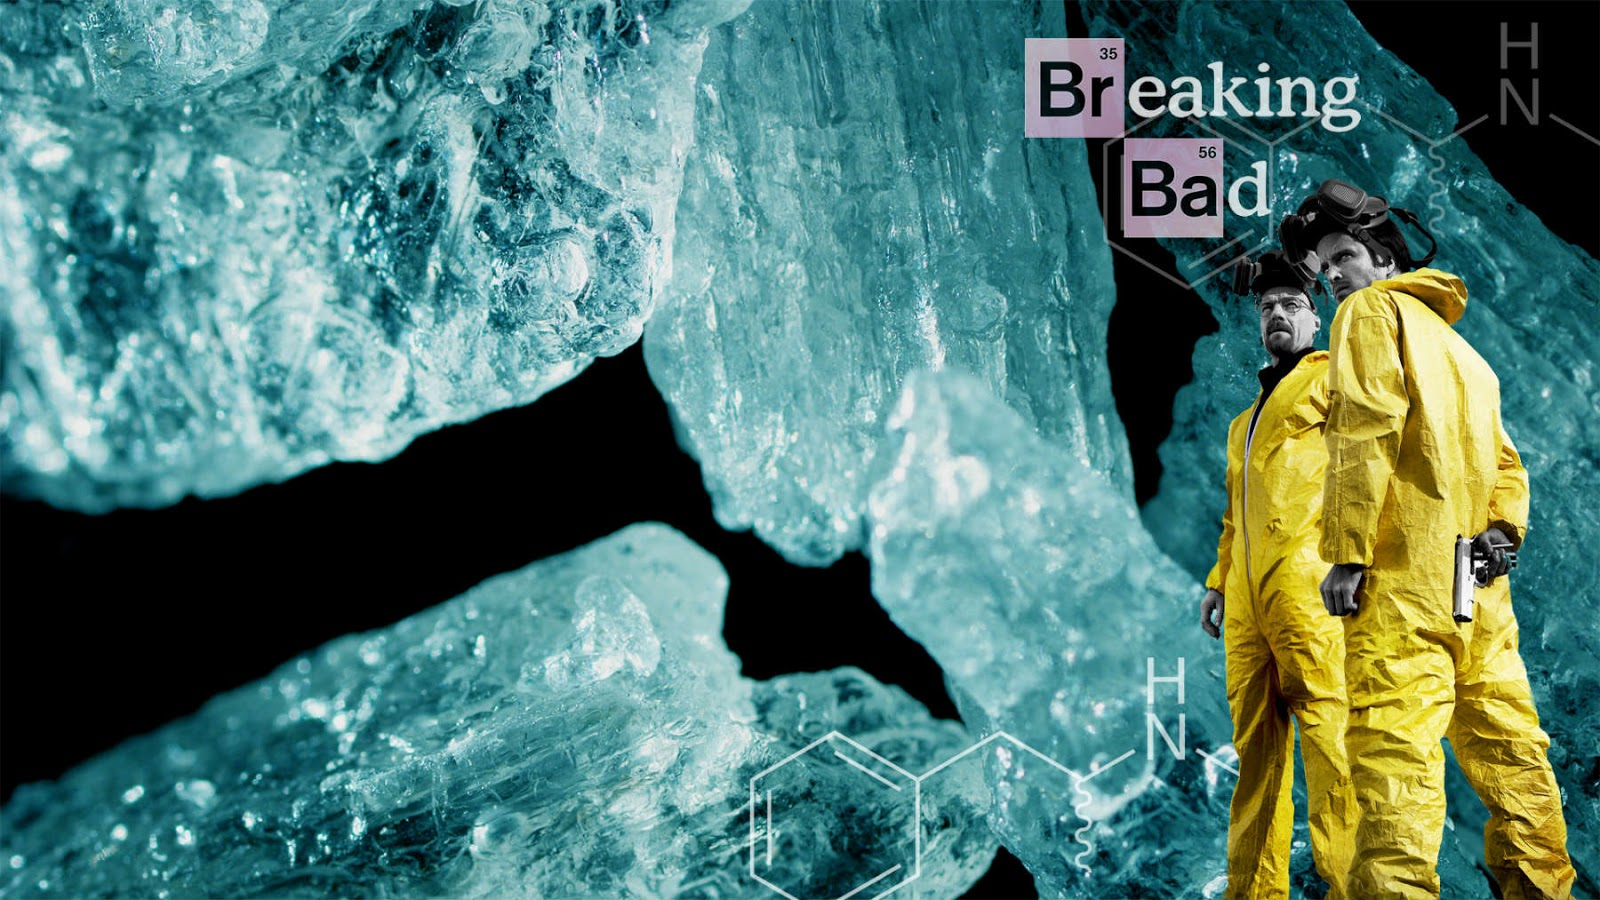 Breaking-Bad-Breaking-Bad-wallpaper-wpc9003178